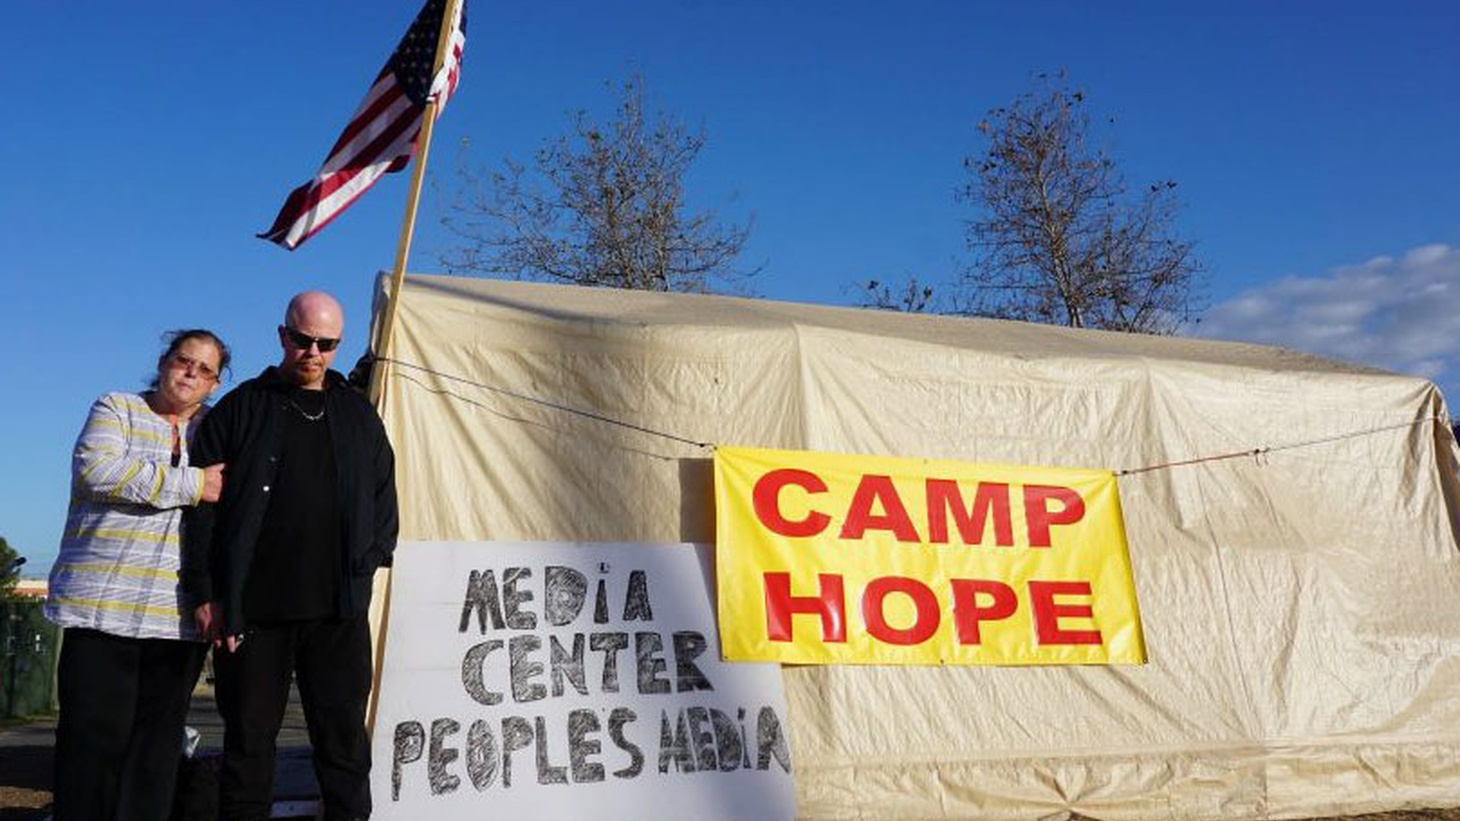 Citing concerns about flooding and squalid conditions in the camps, authorities began an effort last month to evict people from the riverfront and start dismantling the camp sites. But the evictions were stopped last week after U.S.